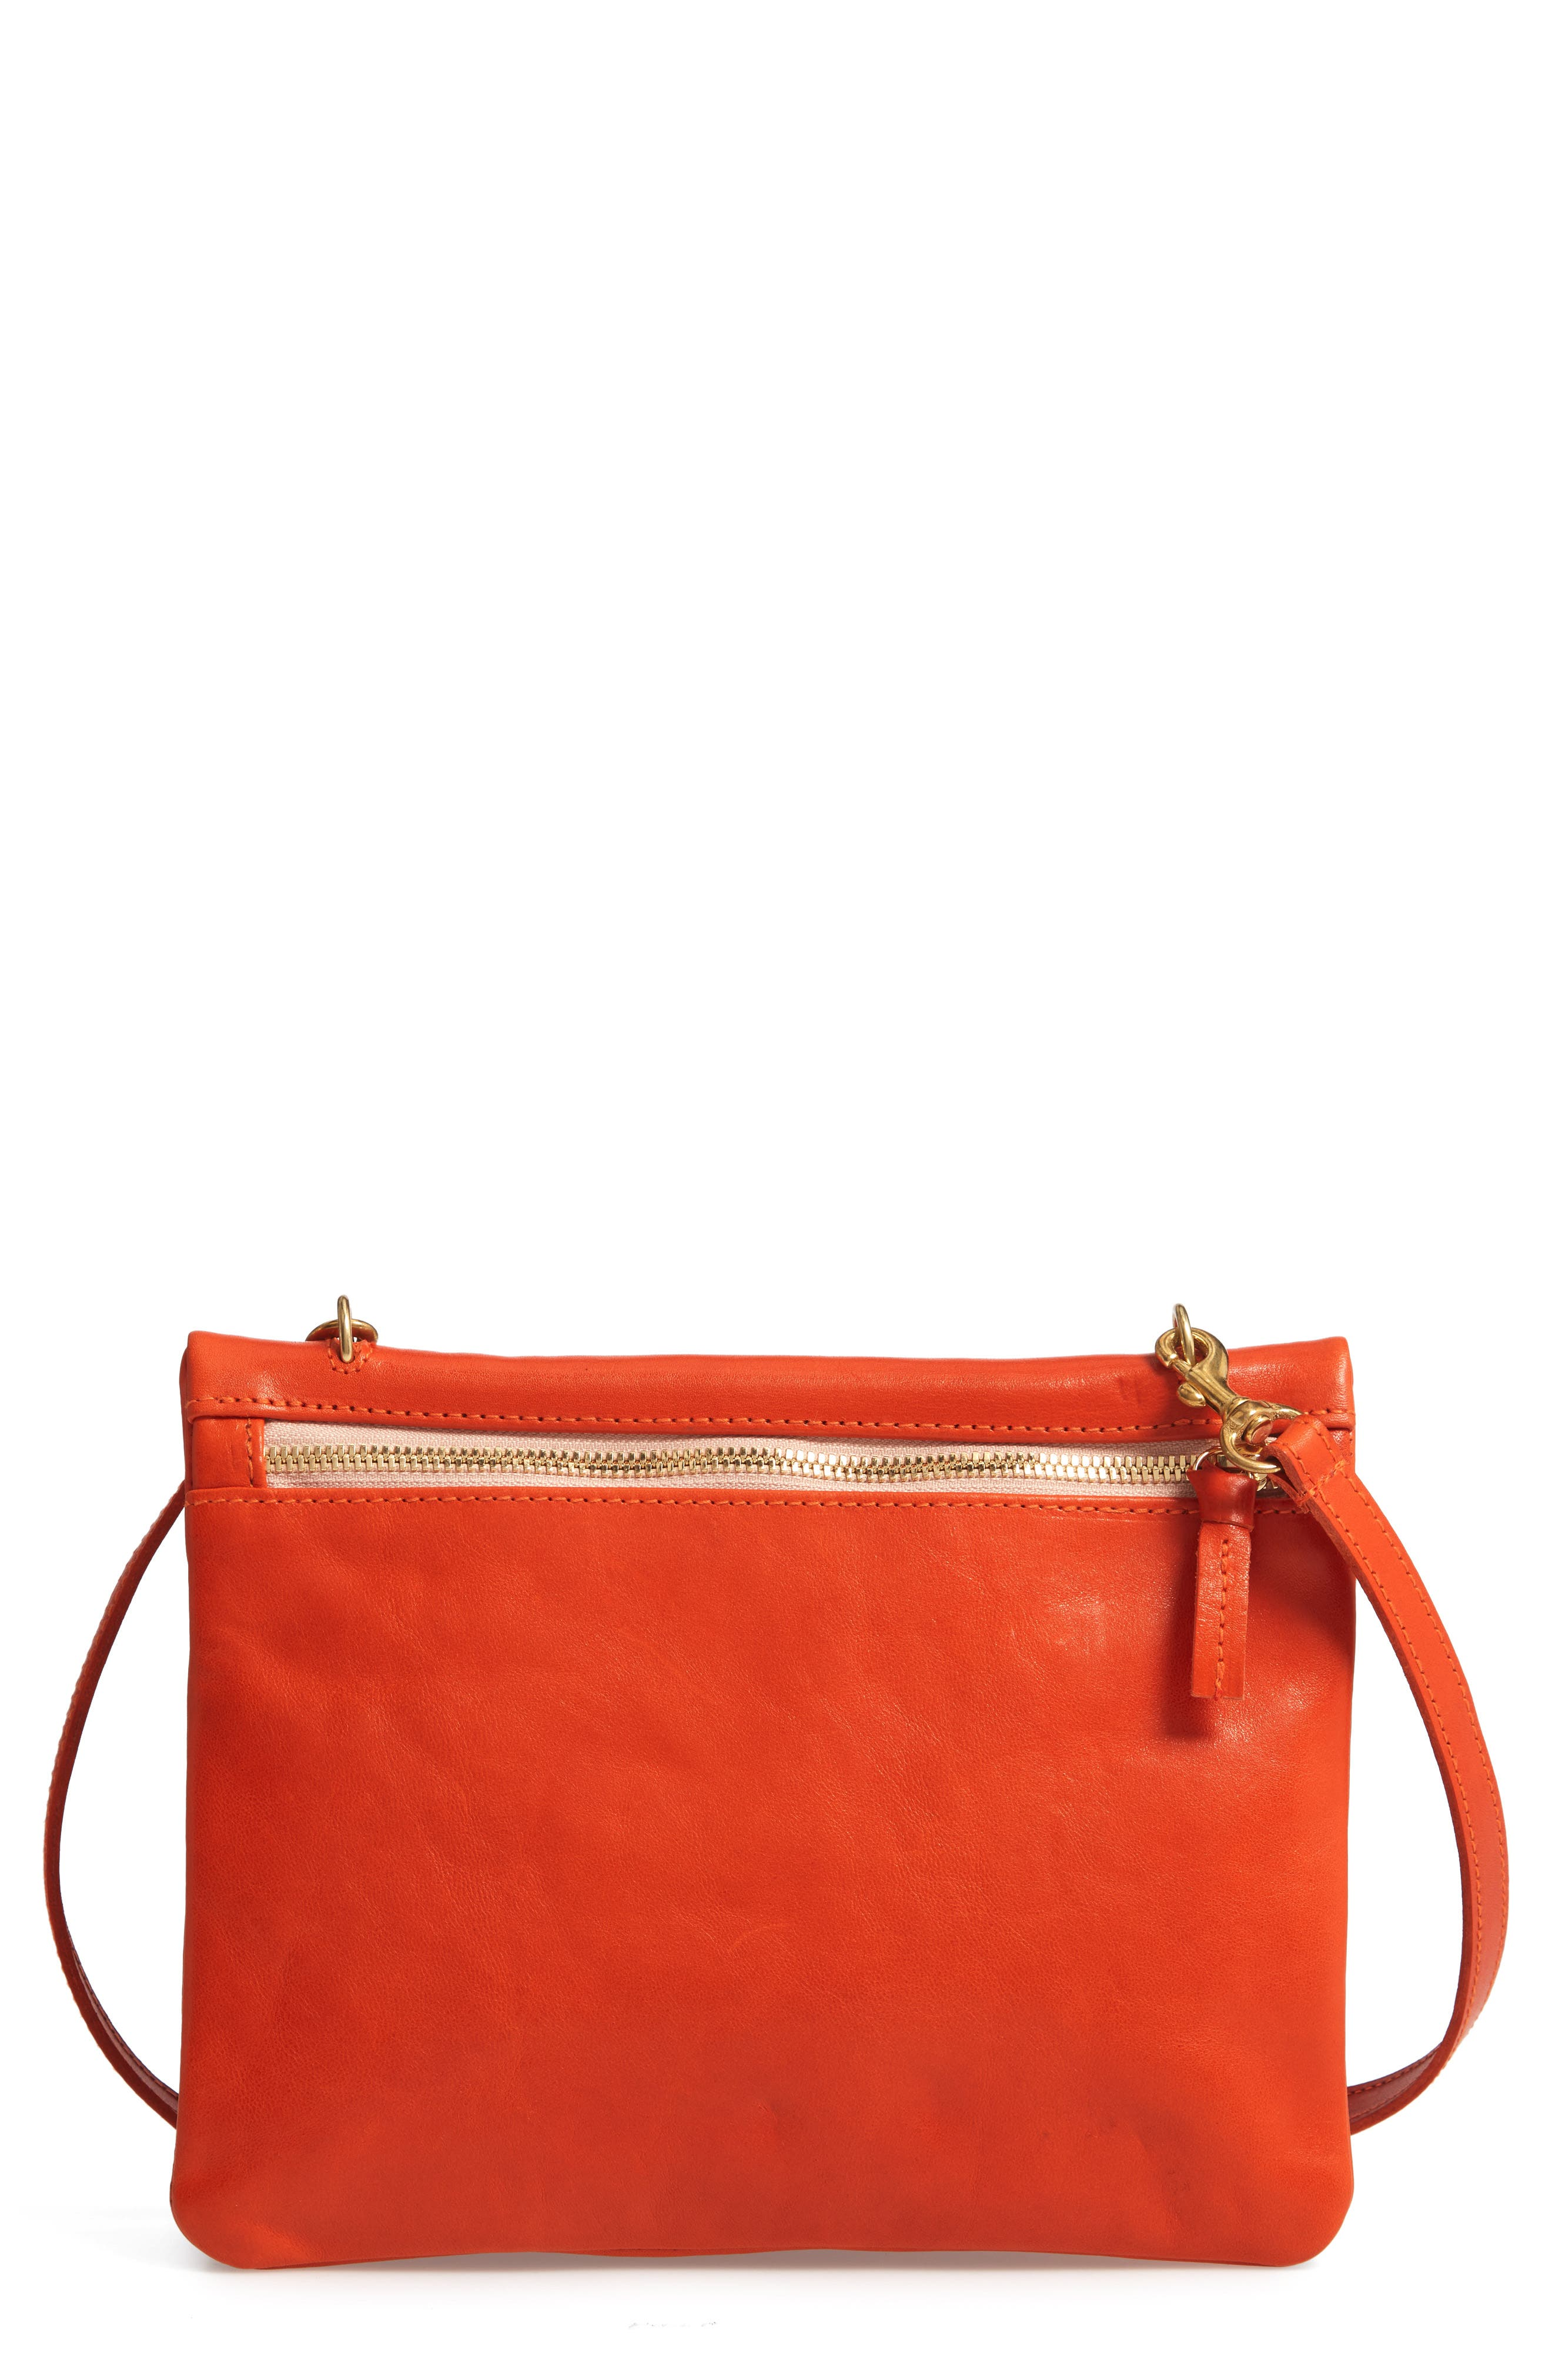 CLARE V Jumelle Leather Crossbody Bag - Red in Poppy Rustic